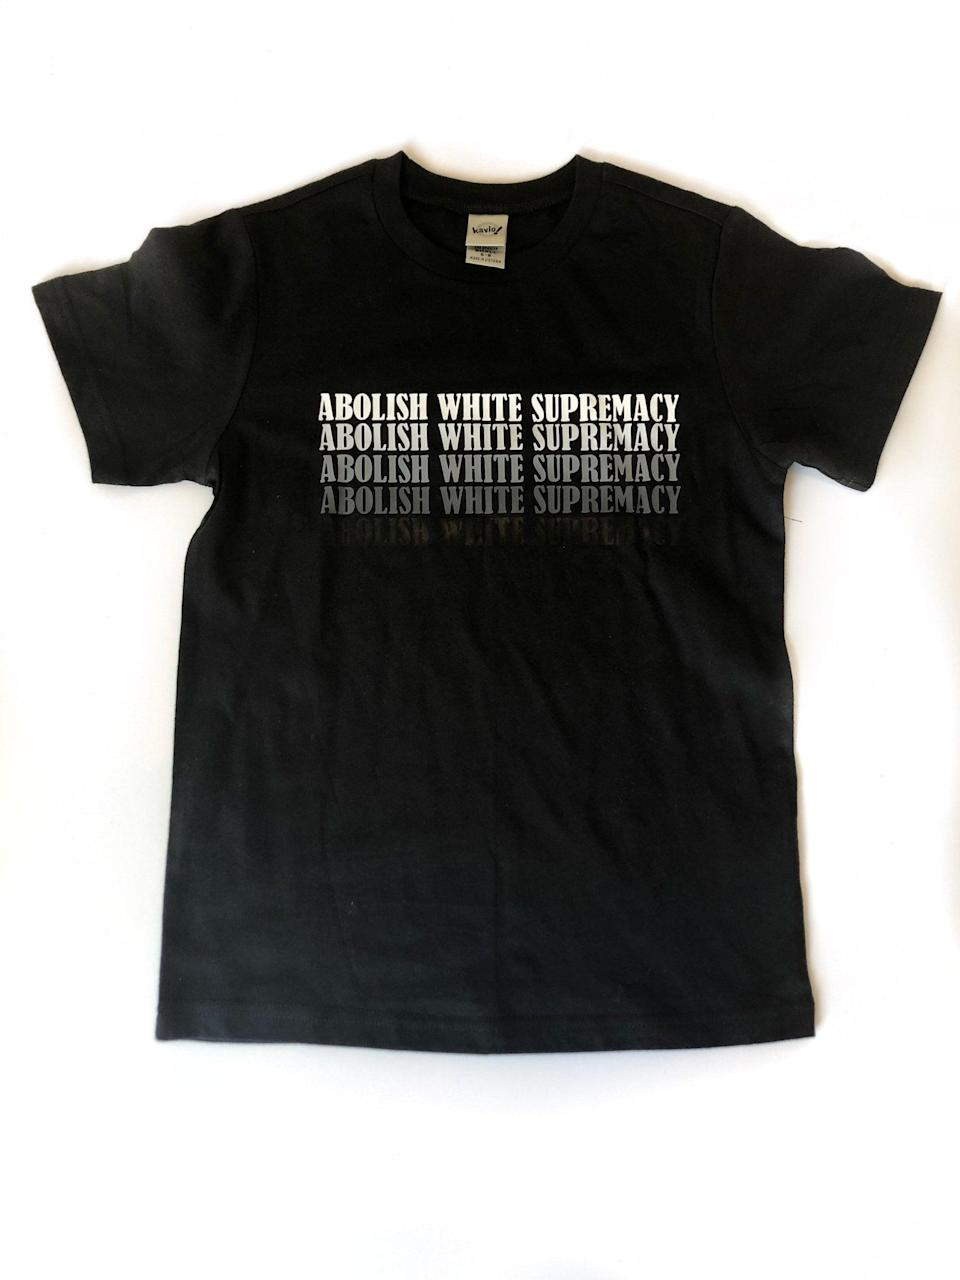 """<p>Available in a slew of sizes, the <a href=""""https://www.popsugar.com/buy/Abolish-White-Supremacy-Kids-Shirt-579614?p_name=Abolish%20White%20Supremacy%20Kids%20Shirt&retailer=typicalblacktees.com&pid=579614&price=24&evar1=moms%3Aus&evar9=47528625&evar98=https%3A%2F%2Fwww.popsugar.com%2Ffamily%2Fphoto-gallery%2F47528625%2Fimage%2F47528781%2FAbolish-White-Supremacy-Kids-Shirt&list1=kid%20shopping&prop13=mobile&pdata=1"""" rel=""""nofollow noopener"""" class=""""link rapid-noclick-resp"""" target=""""_blank"""" data-ylk=""""slk:Abolish White Supremacy Kids Shirt"""">Abolish White Supremacy Kids Shirt</a> ($24) is a must buy.</p>"""